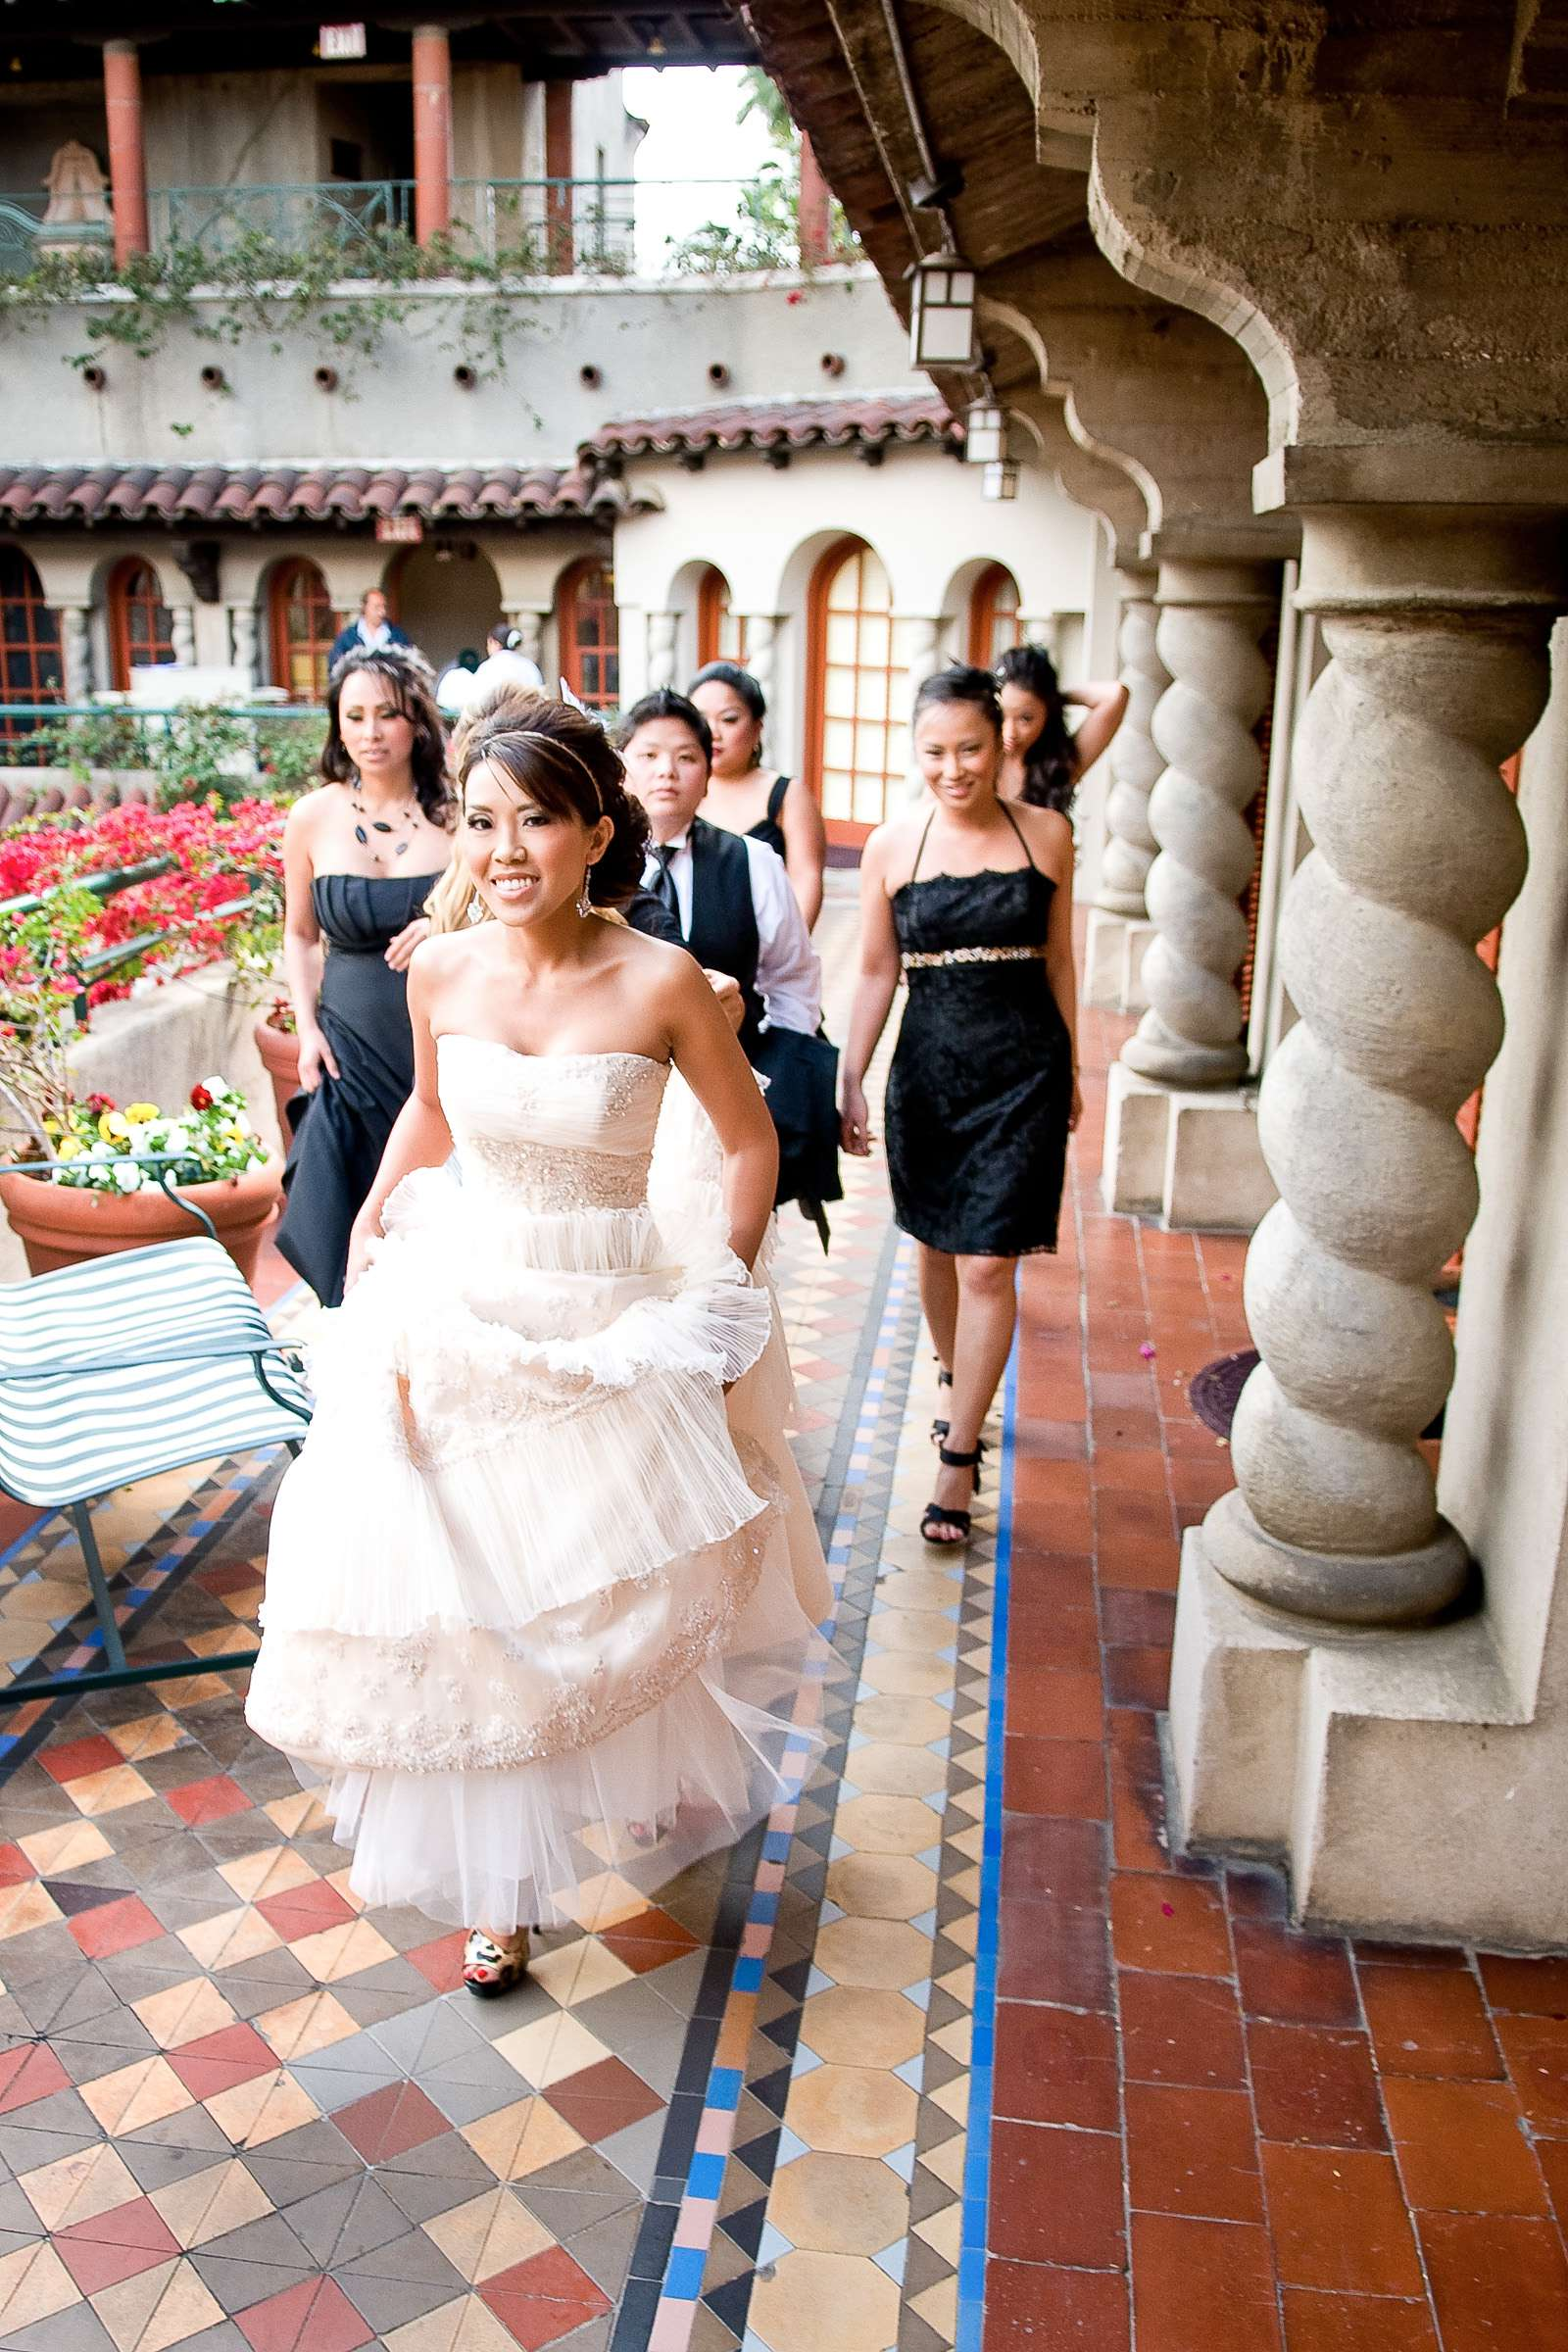 The Mission Inn-Riverside Wedding, Theresa and Francis Wedding Photo #301542 by True Photography